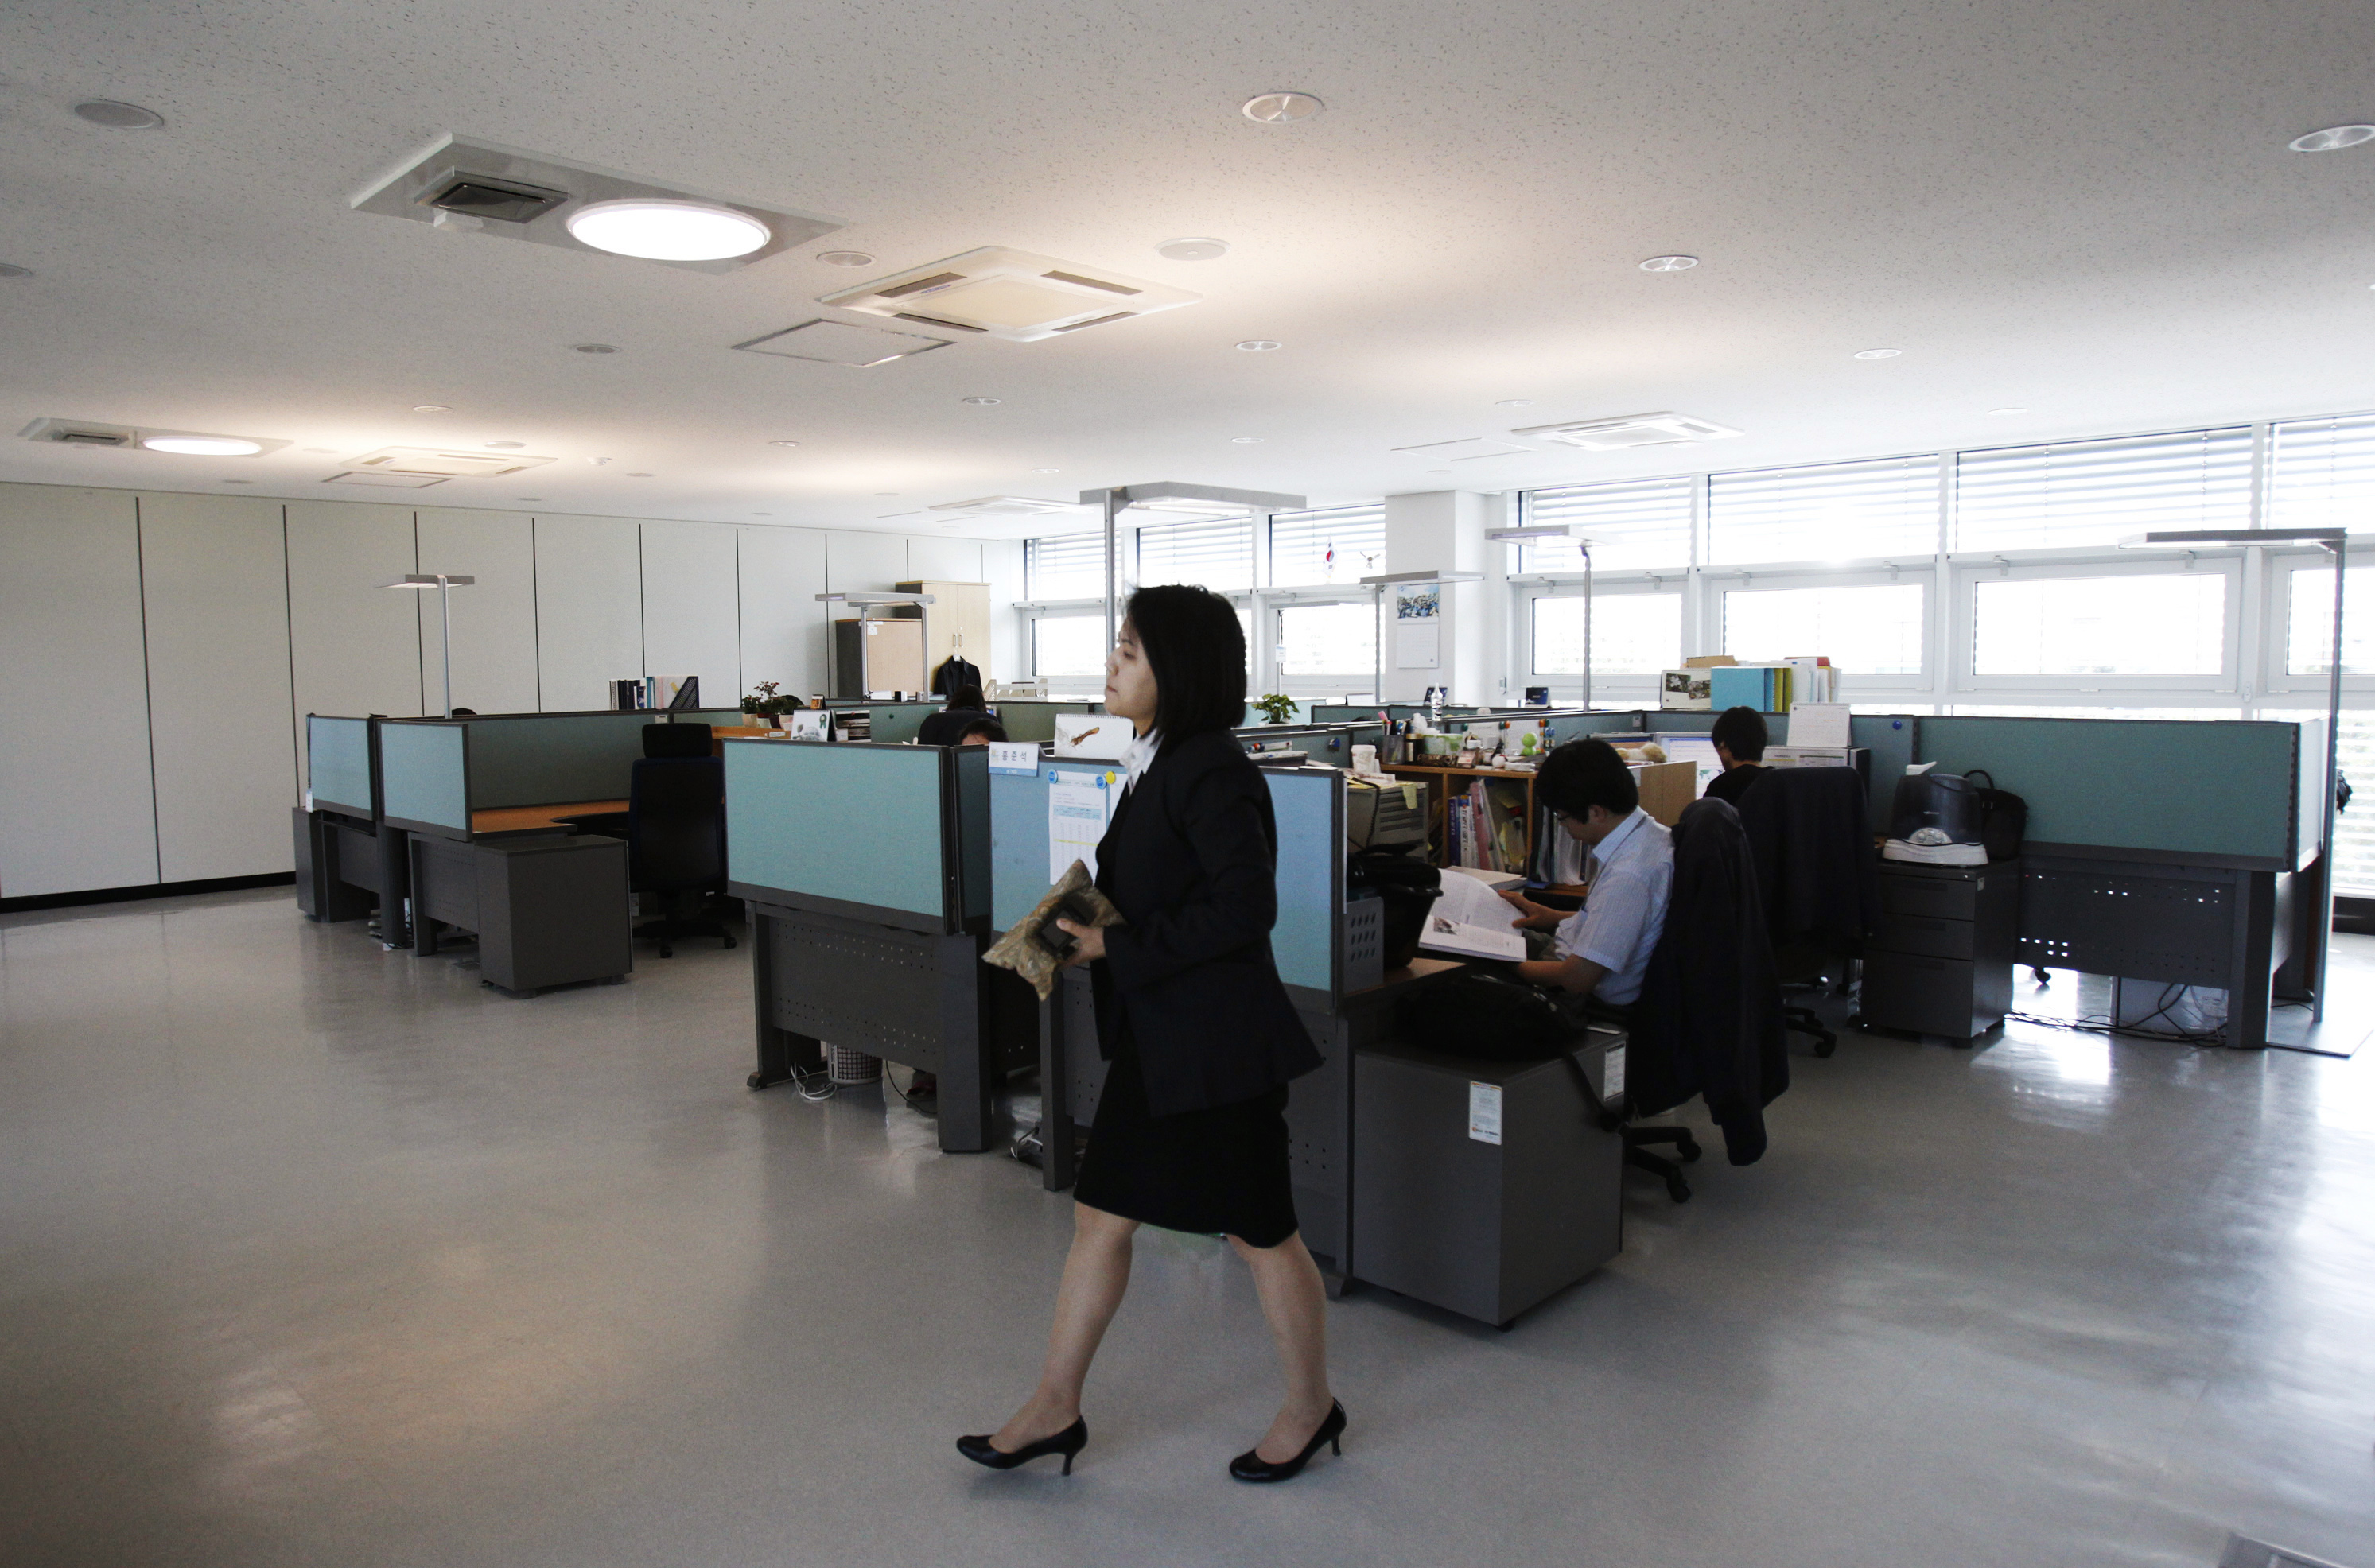 Officials of the National Institute of Environmental Research (NIER) work in the office at its zero carbon building in Incheon, west of Seoul, May 16, 2011. South Korea has opened what it says is the ultimate eco-friendly business centre, a construction that emits zero carbon and uses only renewable energy, in a project to underline the government's commitment to reduce greenhouse gases. The 2,500 square-metre building, which houses a climate change research centre at Incheon near the capital Seoul, was opened in April by the environment ministry at a cost of around $8 million. Picture taken May 16. To match Reuters Life! KOREA-GREEN/ REUTERS/Truth Leem (SOUTH KOREA - Tags: ENVIRONMENT SOCIETY BUSINESS CONSTRUCTION ENERGY) - GM1E75K1K5Q01